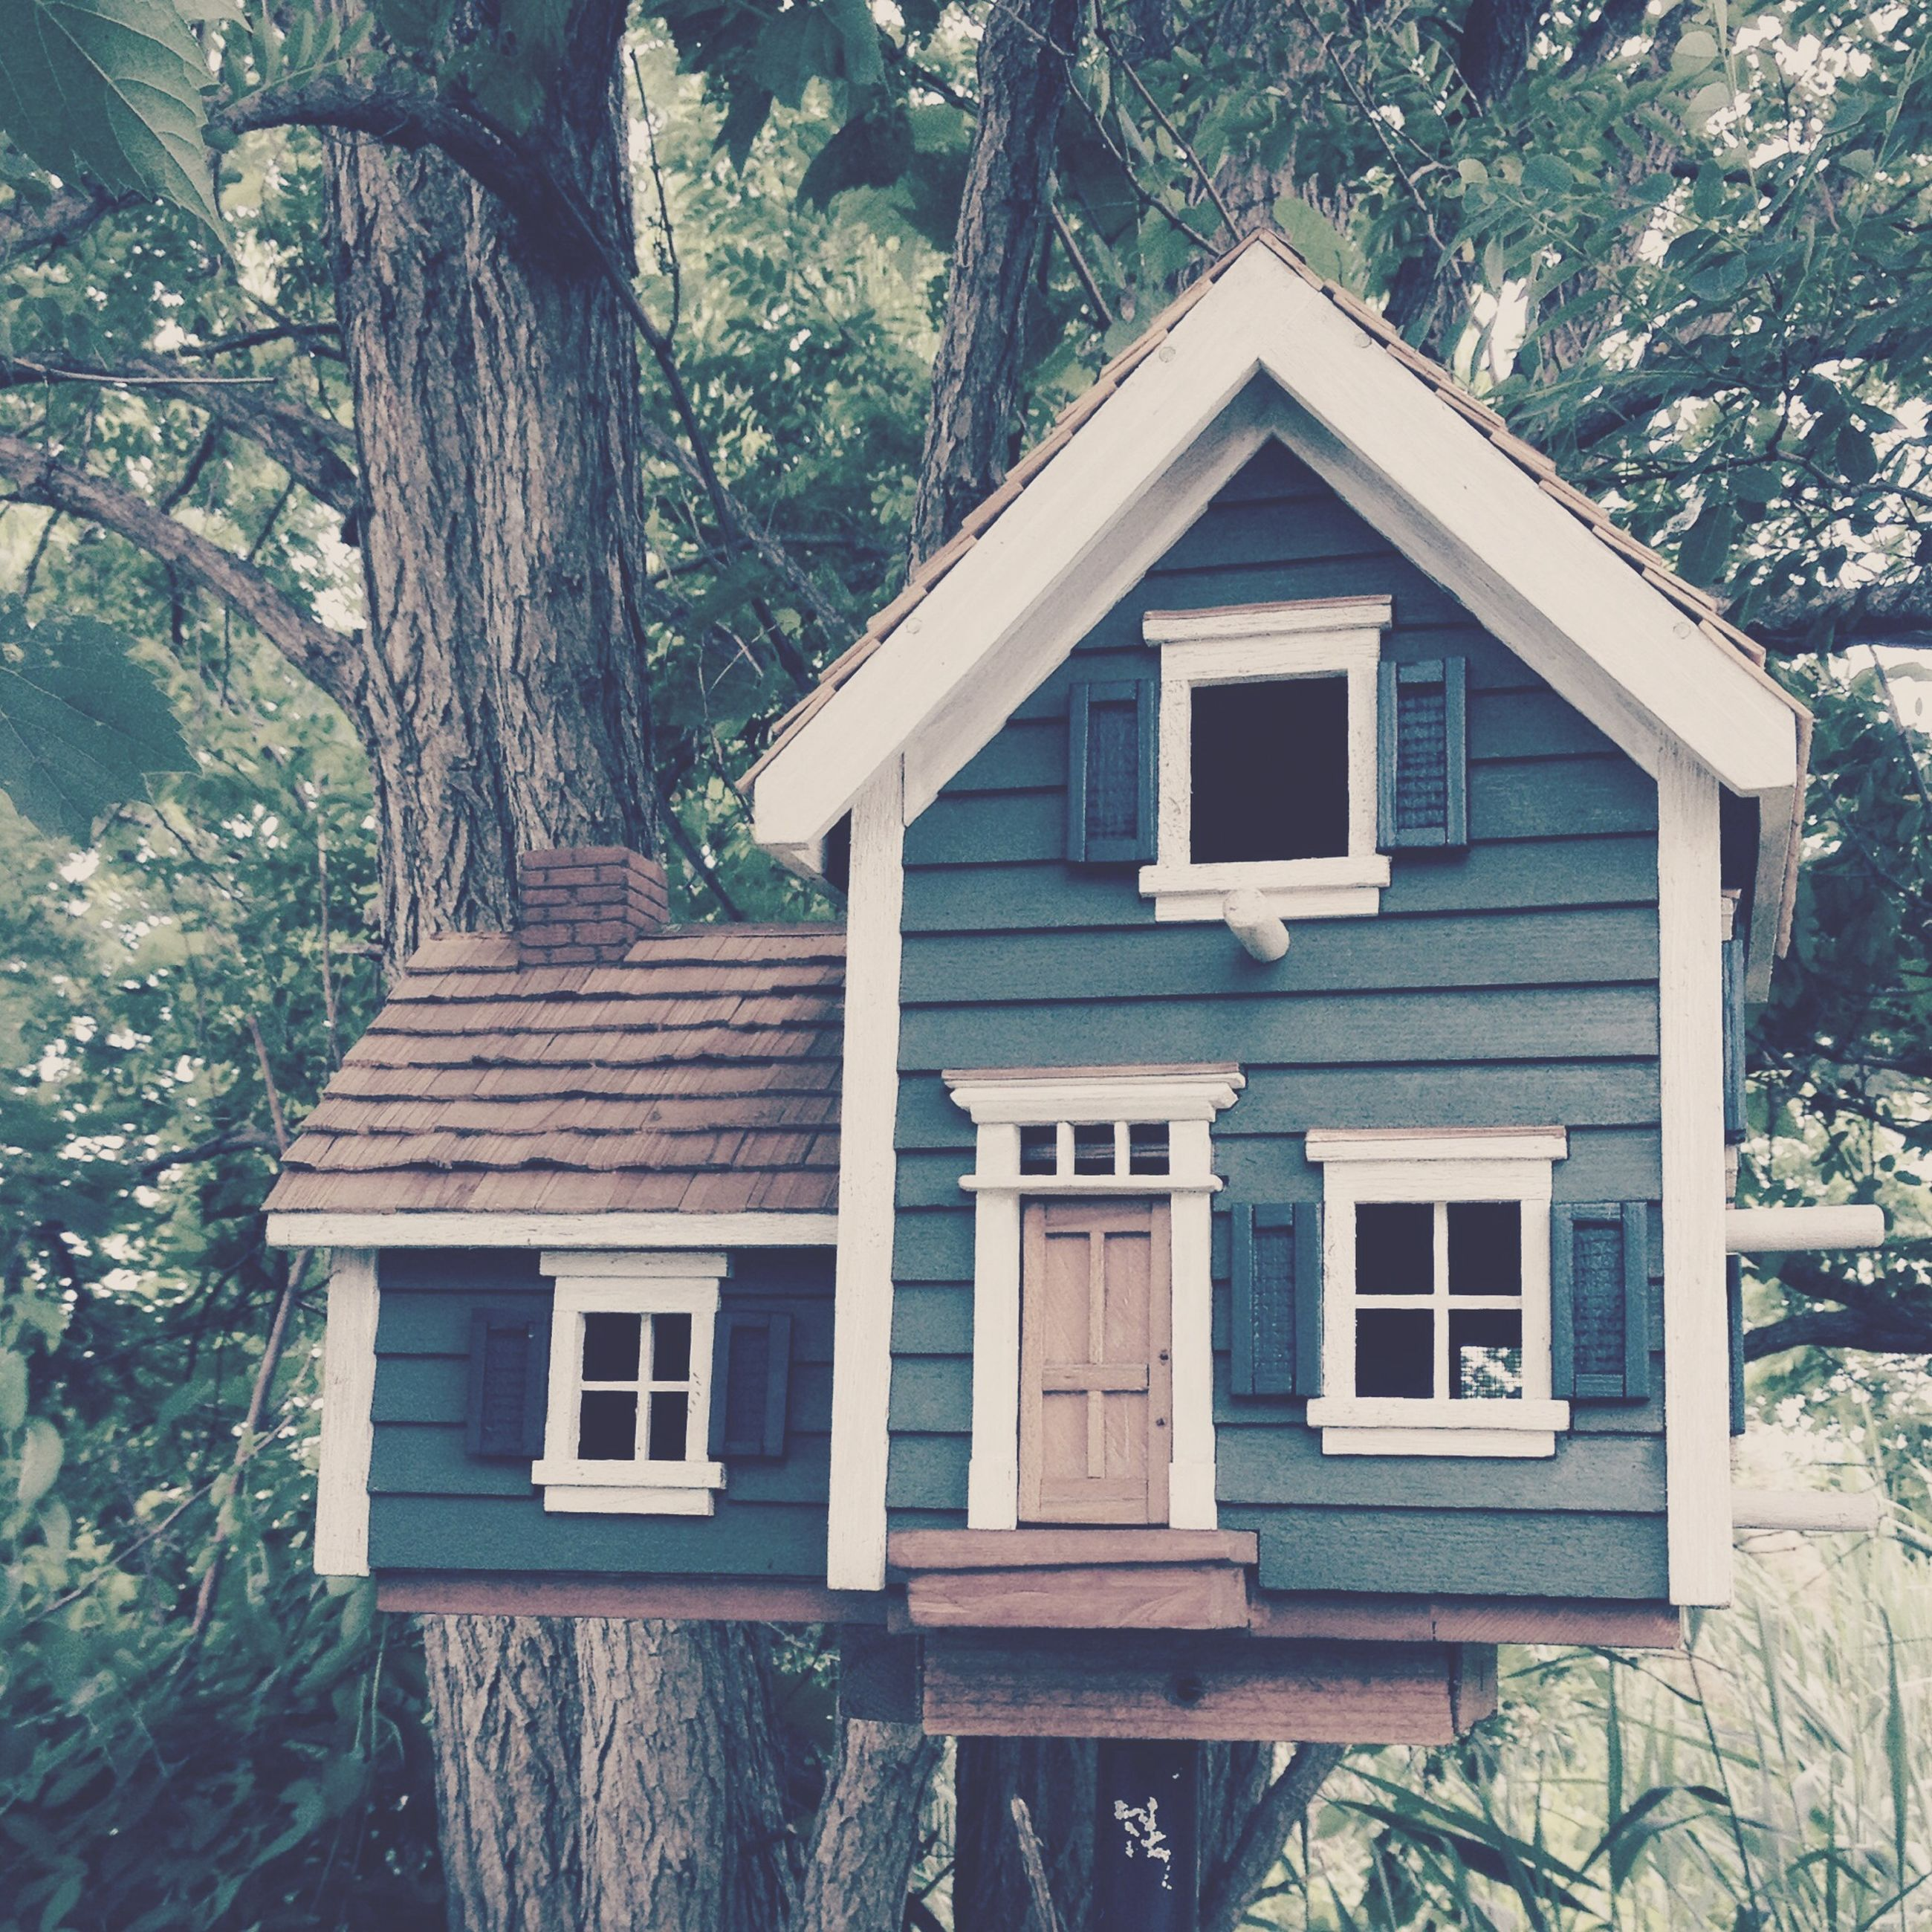 building exterior, built structure, architecture, tree, window, house, residential structure, sunlight, wood - material, growth, day, residential building, tree trunk, no people, outdoors, nature, low angle view, branch, plant, front or back yard